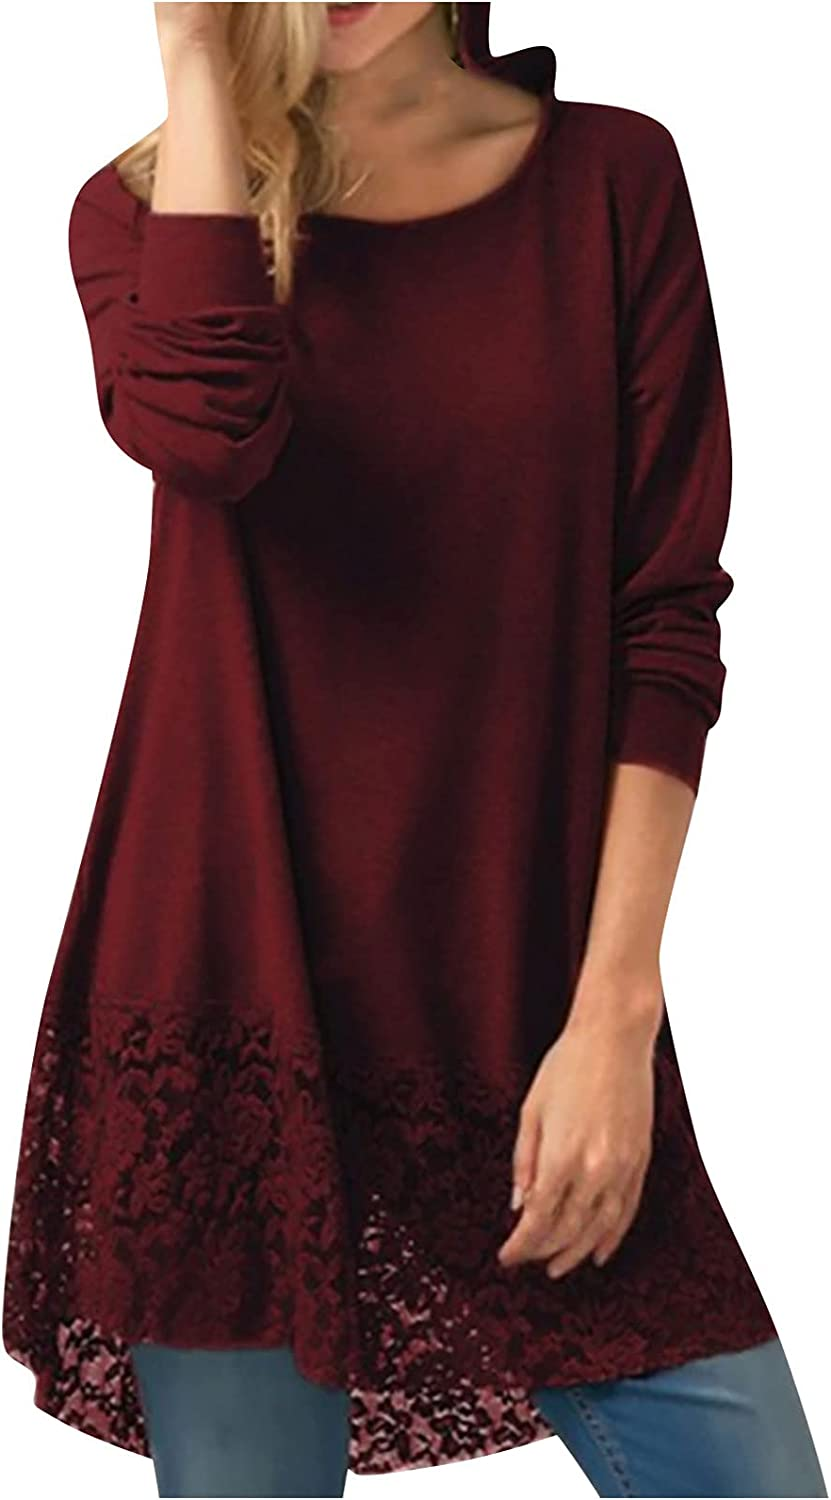 Plus Size Tunic Tops for Women Long Sleeve T-Shirts Casual O Oneck Lace Pullover Fashion Hooded Sweatshirt